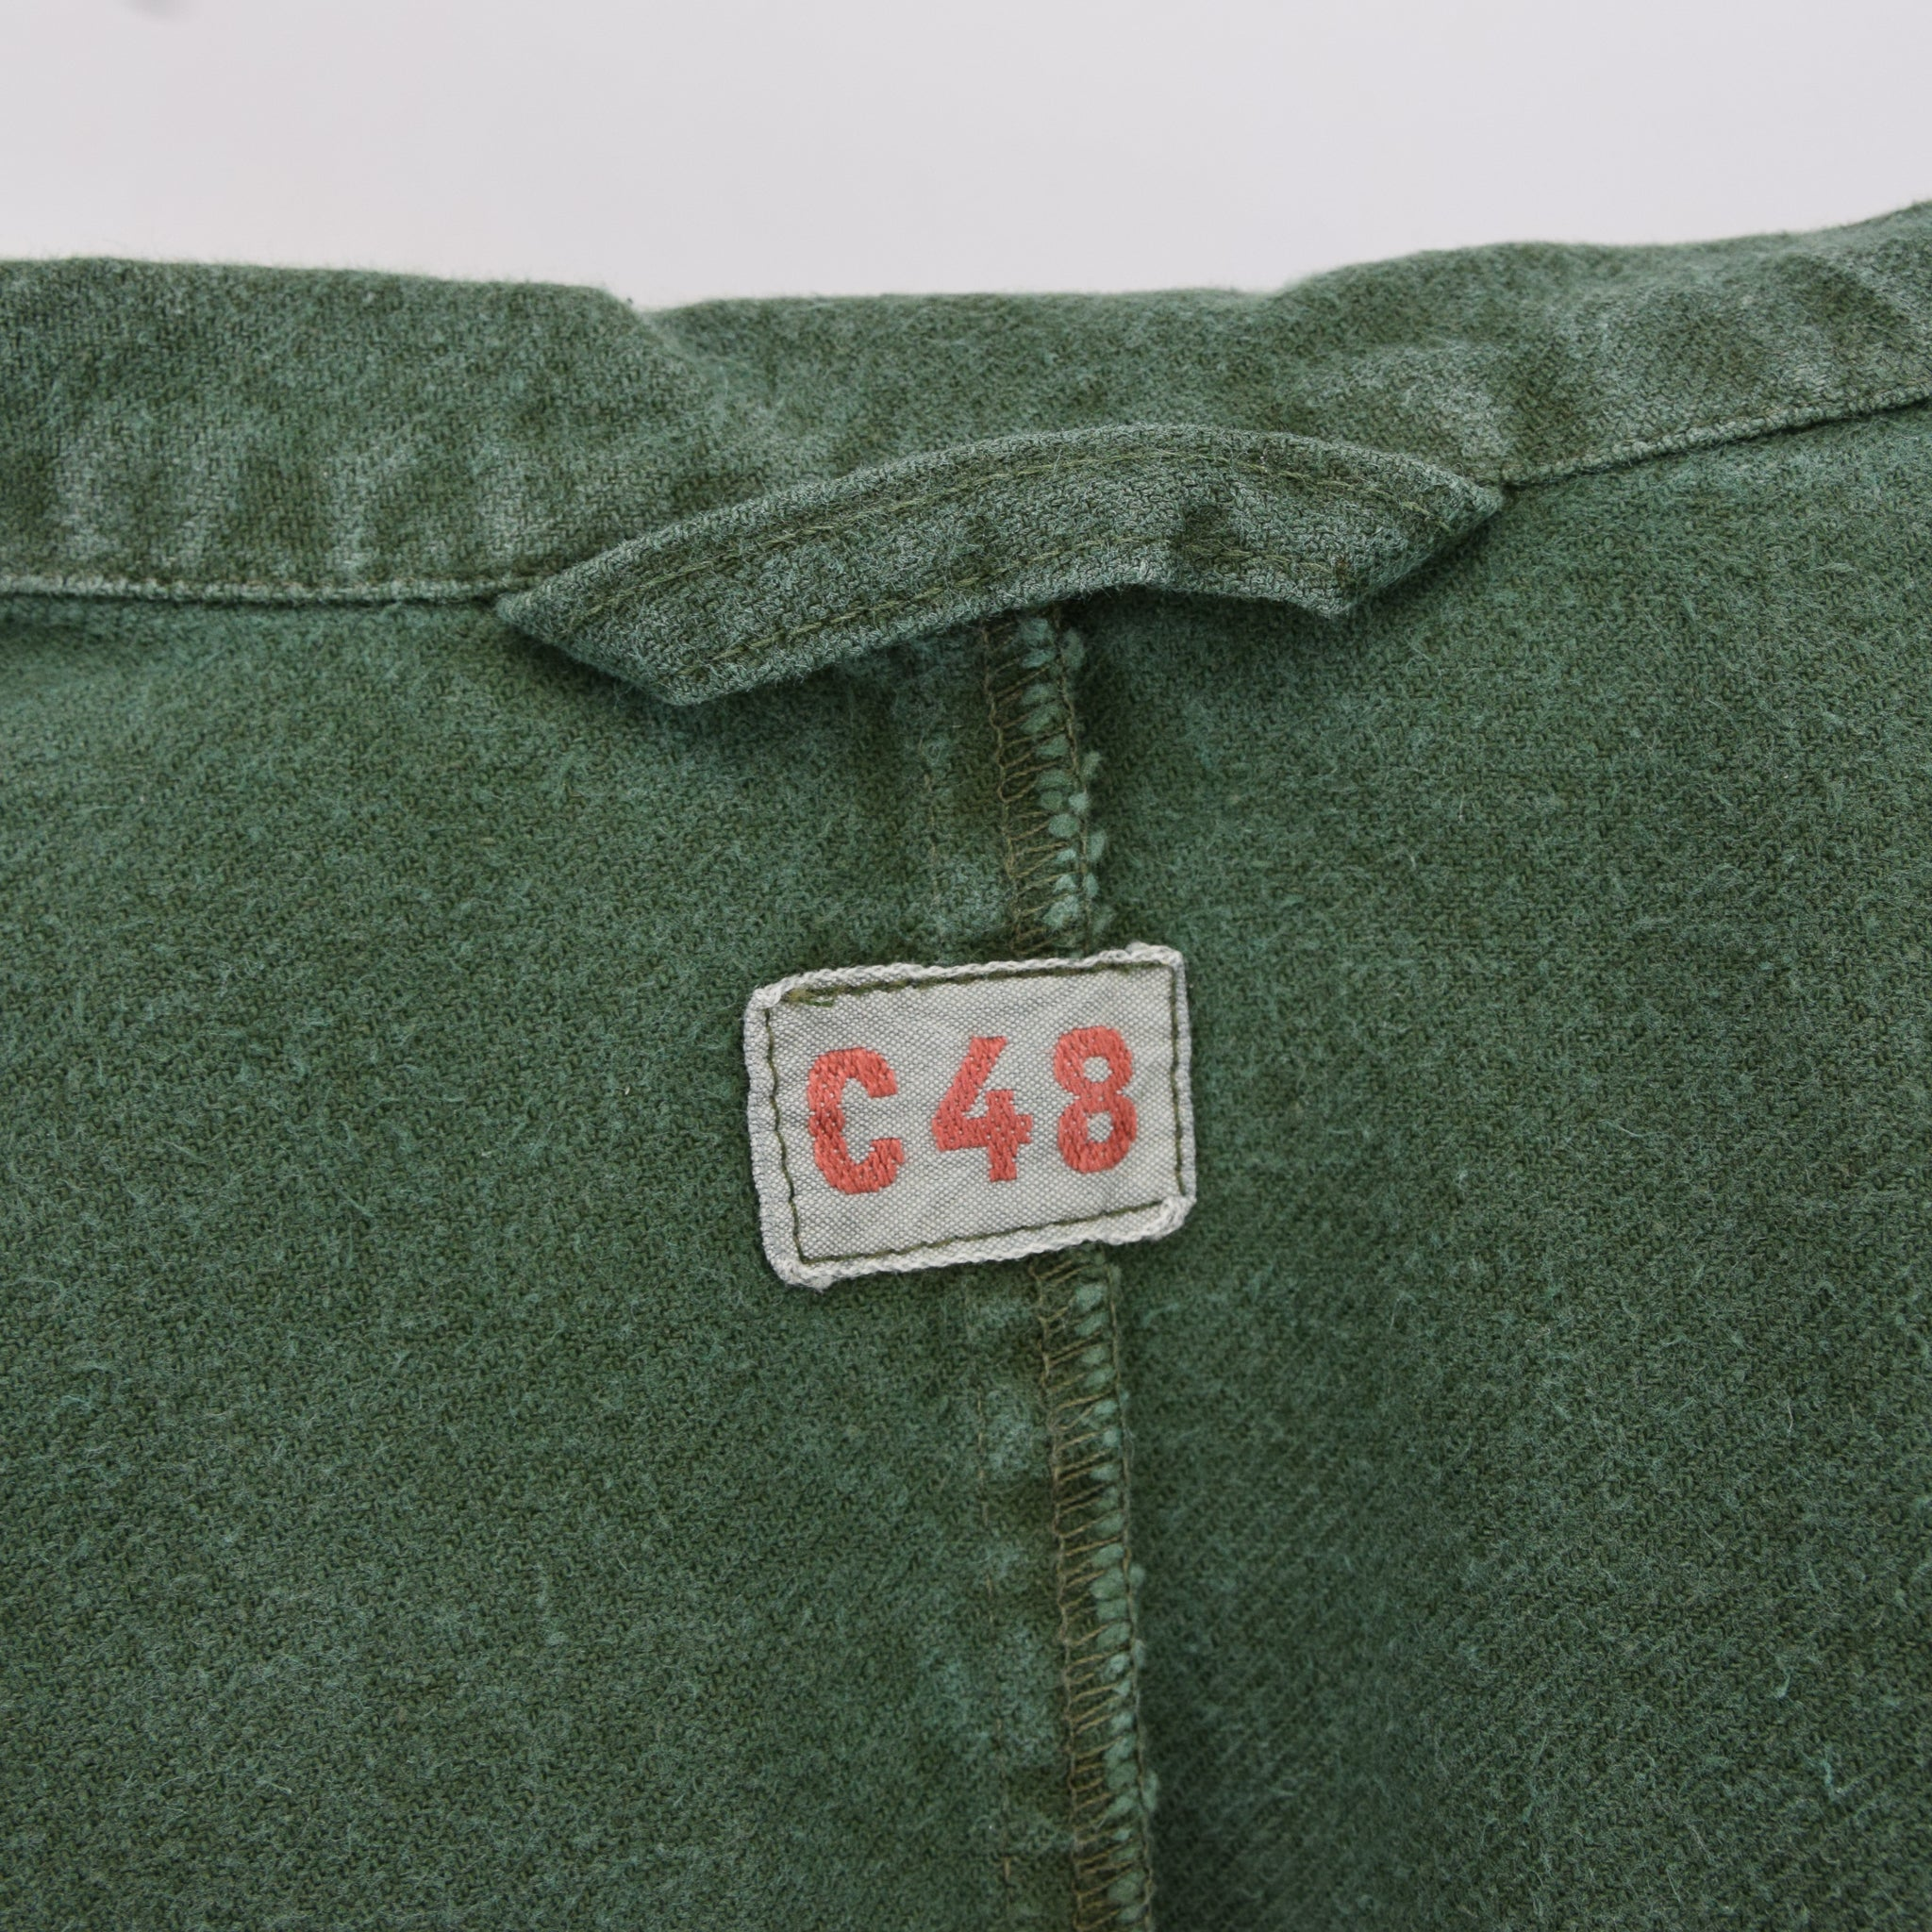 Vintage Swedish Worker Style Green Distressed Military Cotton Field Jacket M / L label